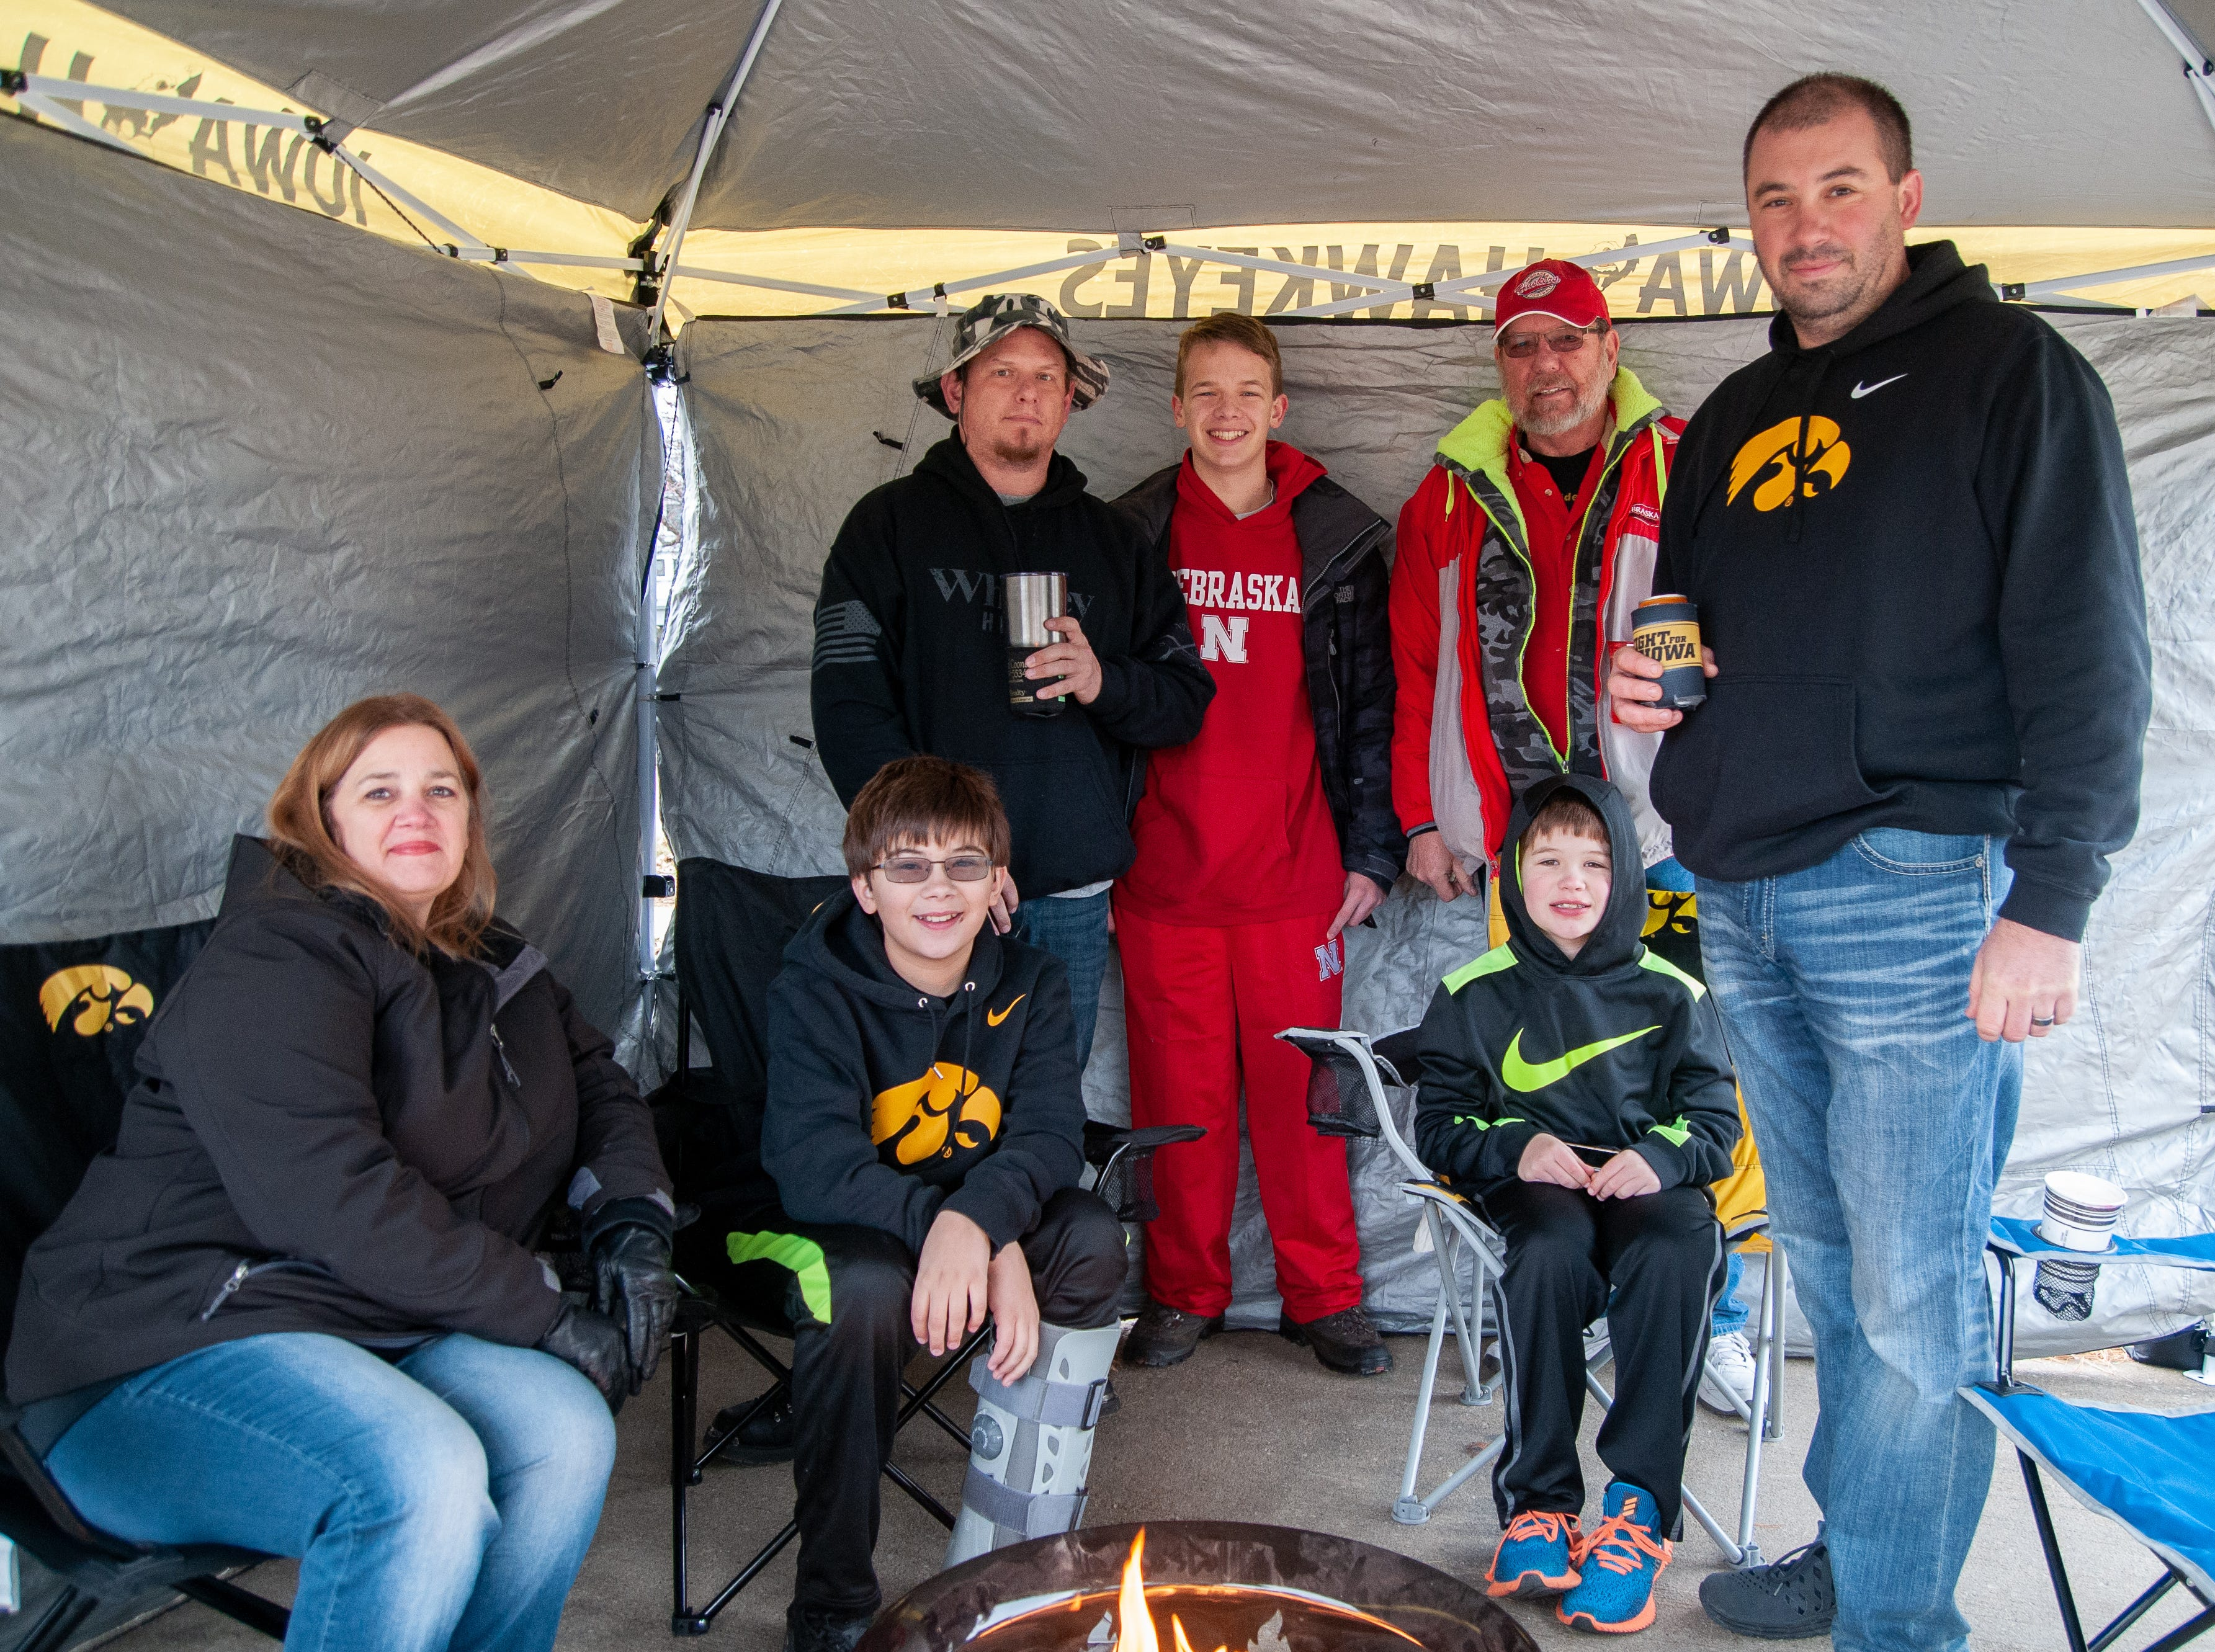 The Odgaard Tailgate, of Des Moines, Friday, Nov. 23, 2018, while tailgating before the Iowa game against Nebraska in Iowa City.